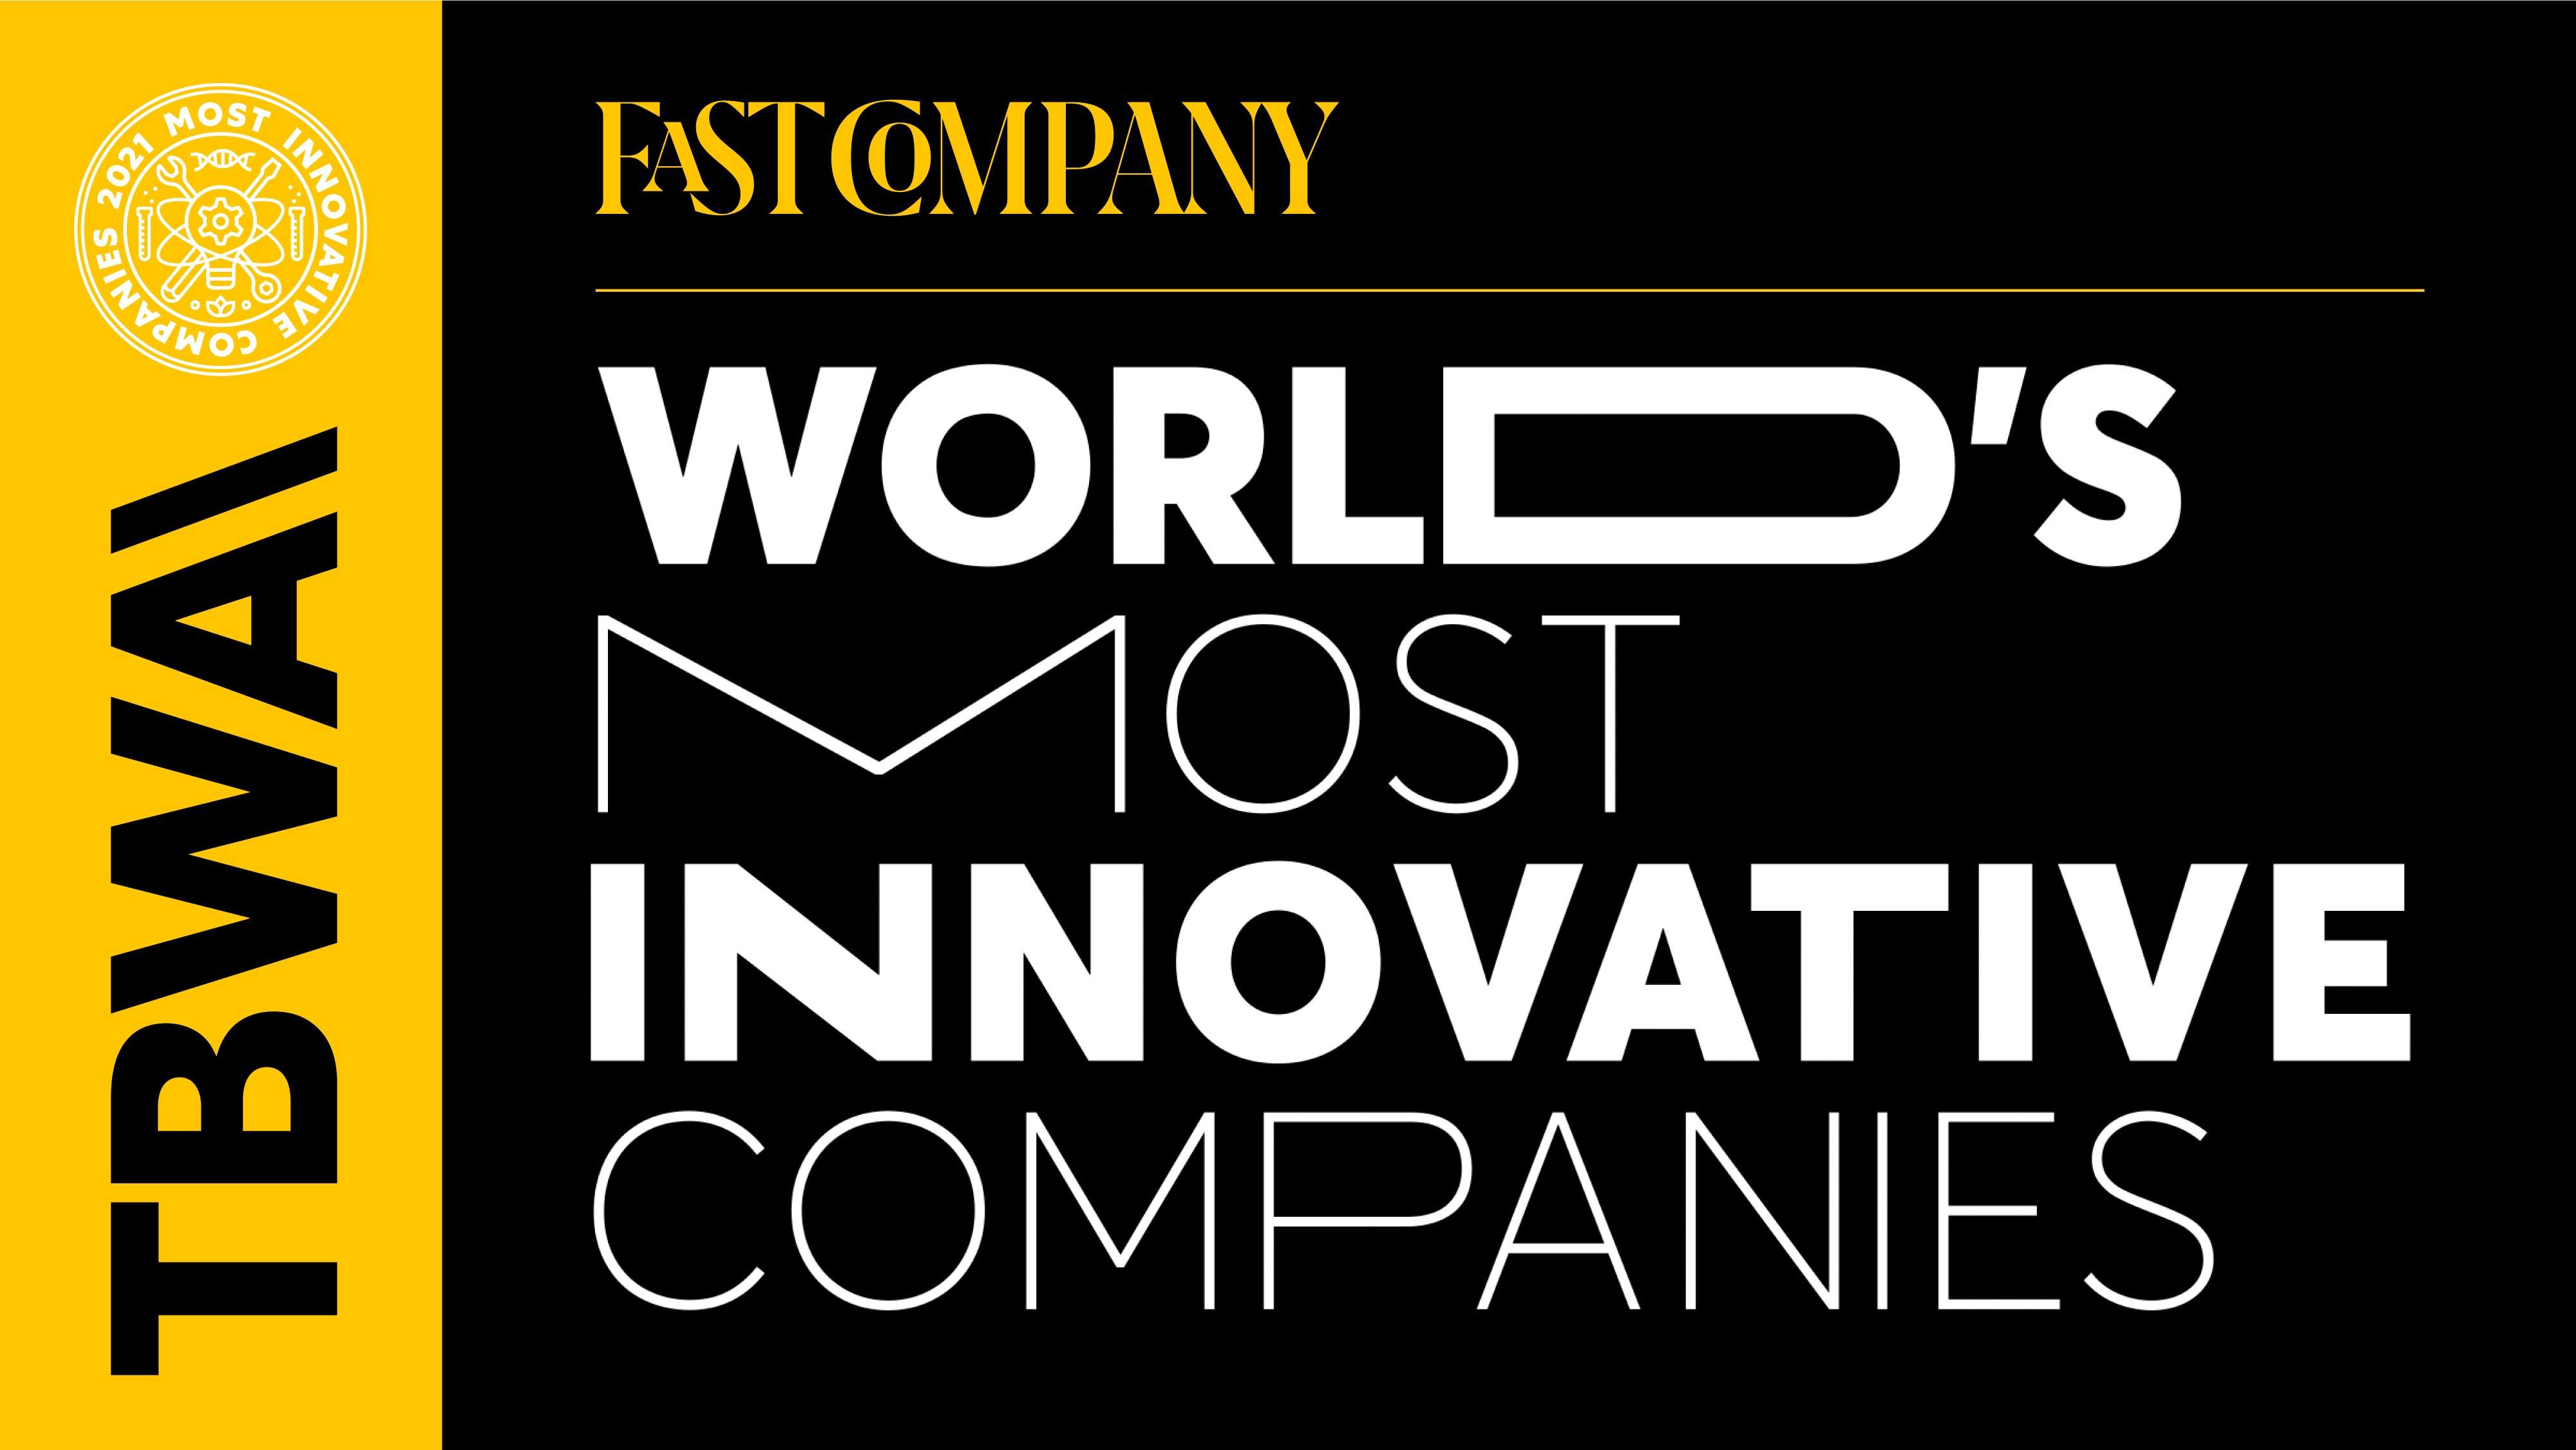 Fast Company Names TBWA\Worldwide One of the World's Most Innovative Companies for the Third Year in a Row